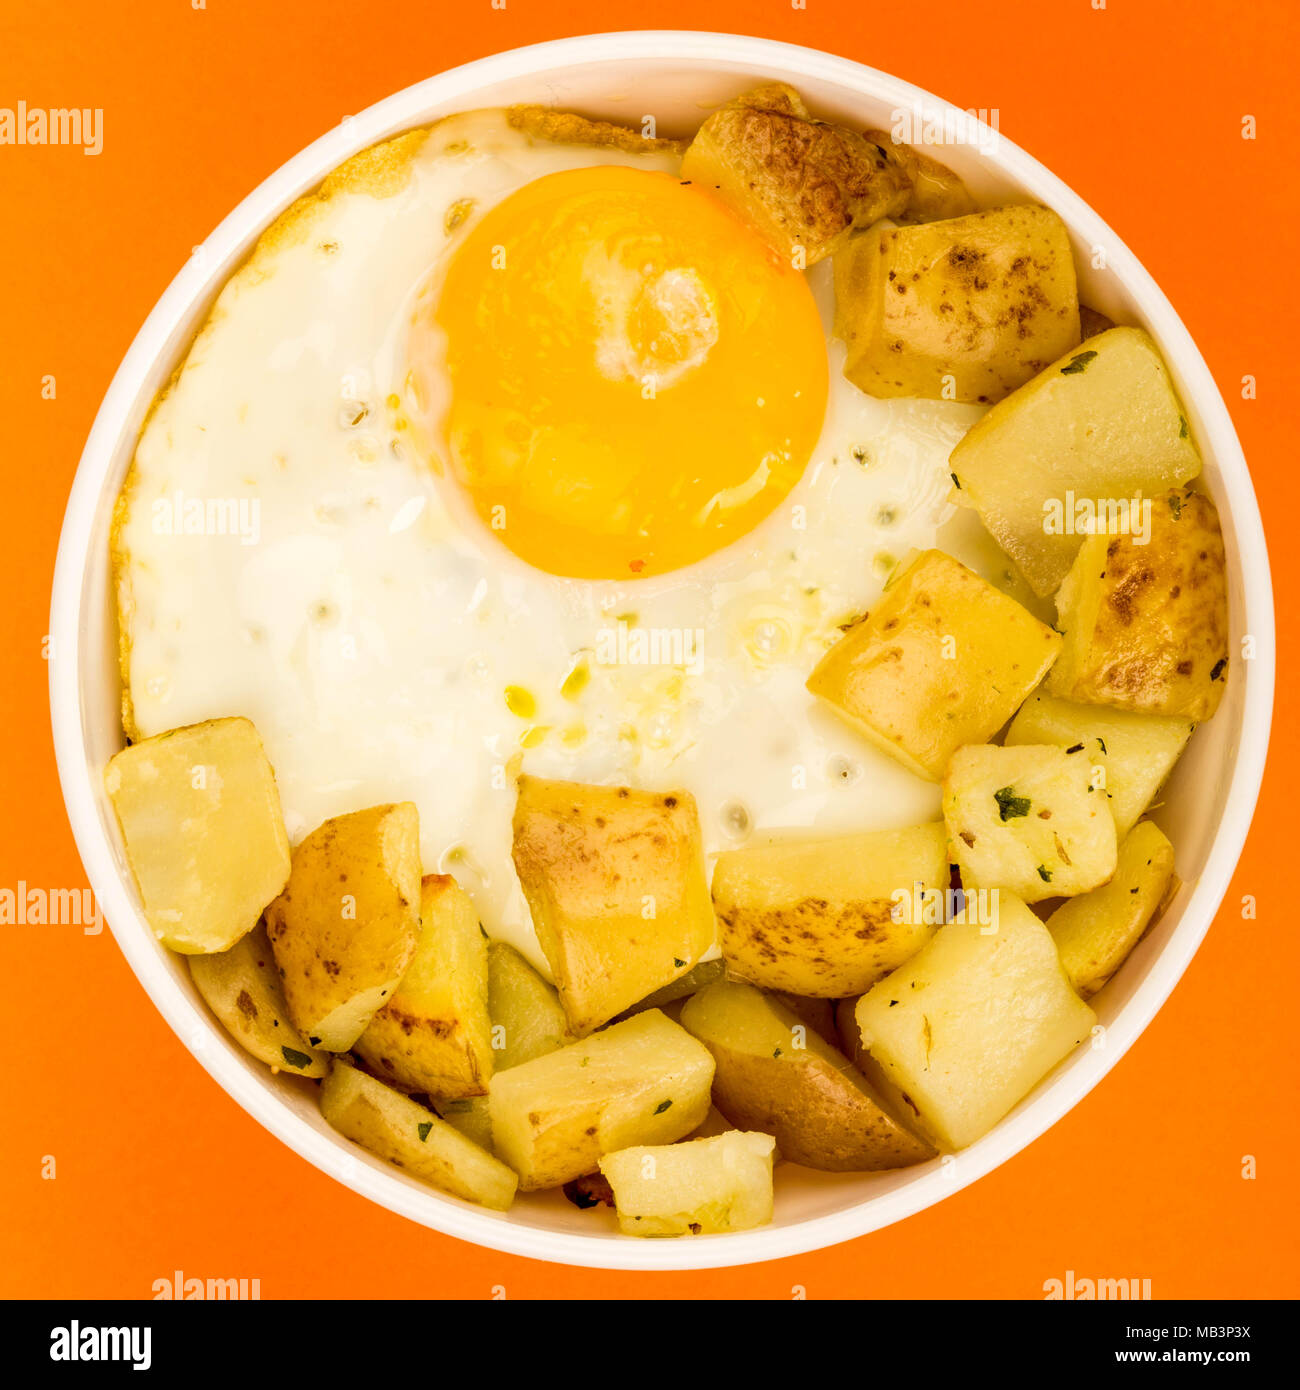 Fried Egg With Fried Potatoes Breakfast In A Bowl Against An Orange Background - Stock Image